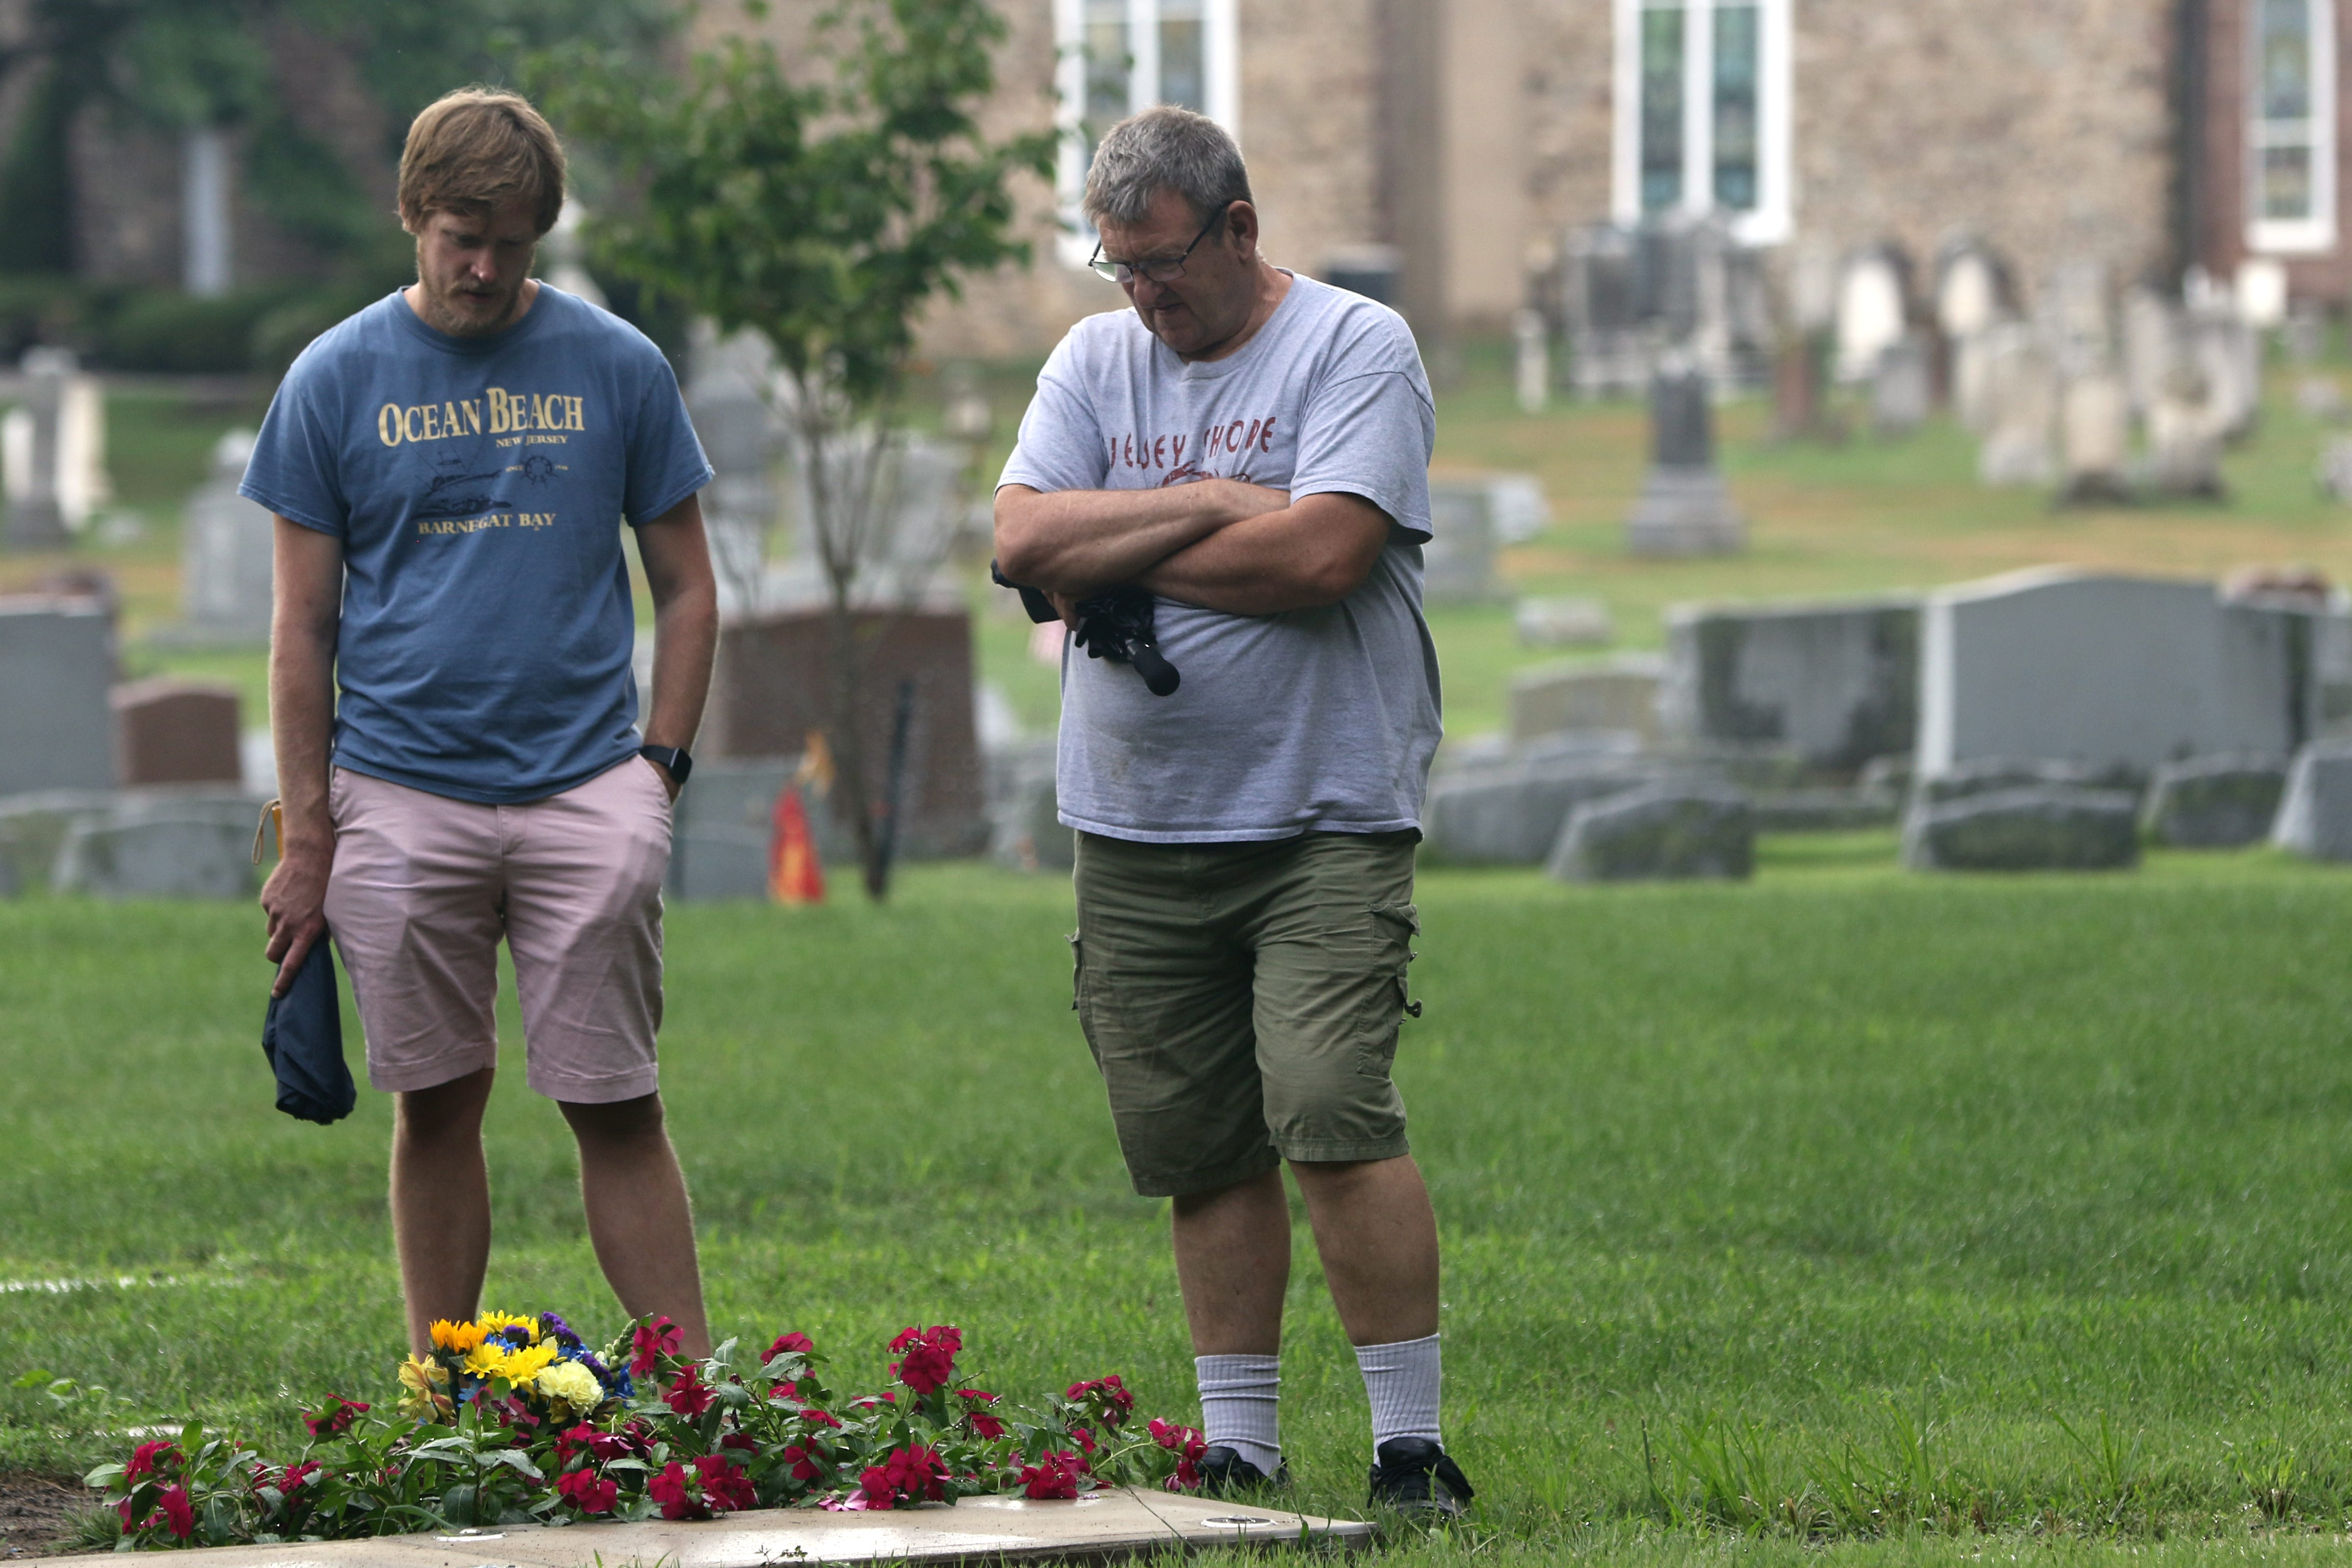 The Birchenough family walks away from Barbara's grave.